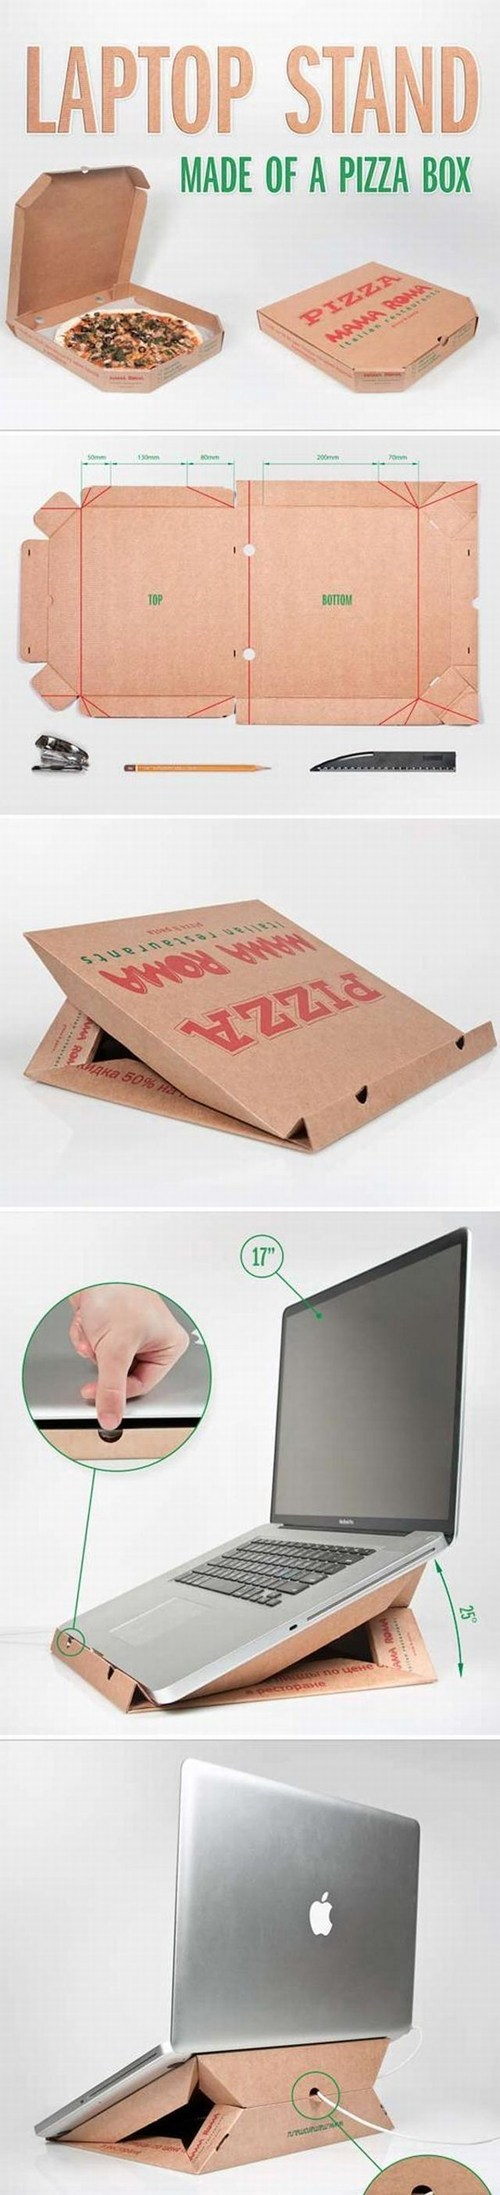 laptops pizza boxes DIY